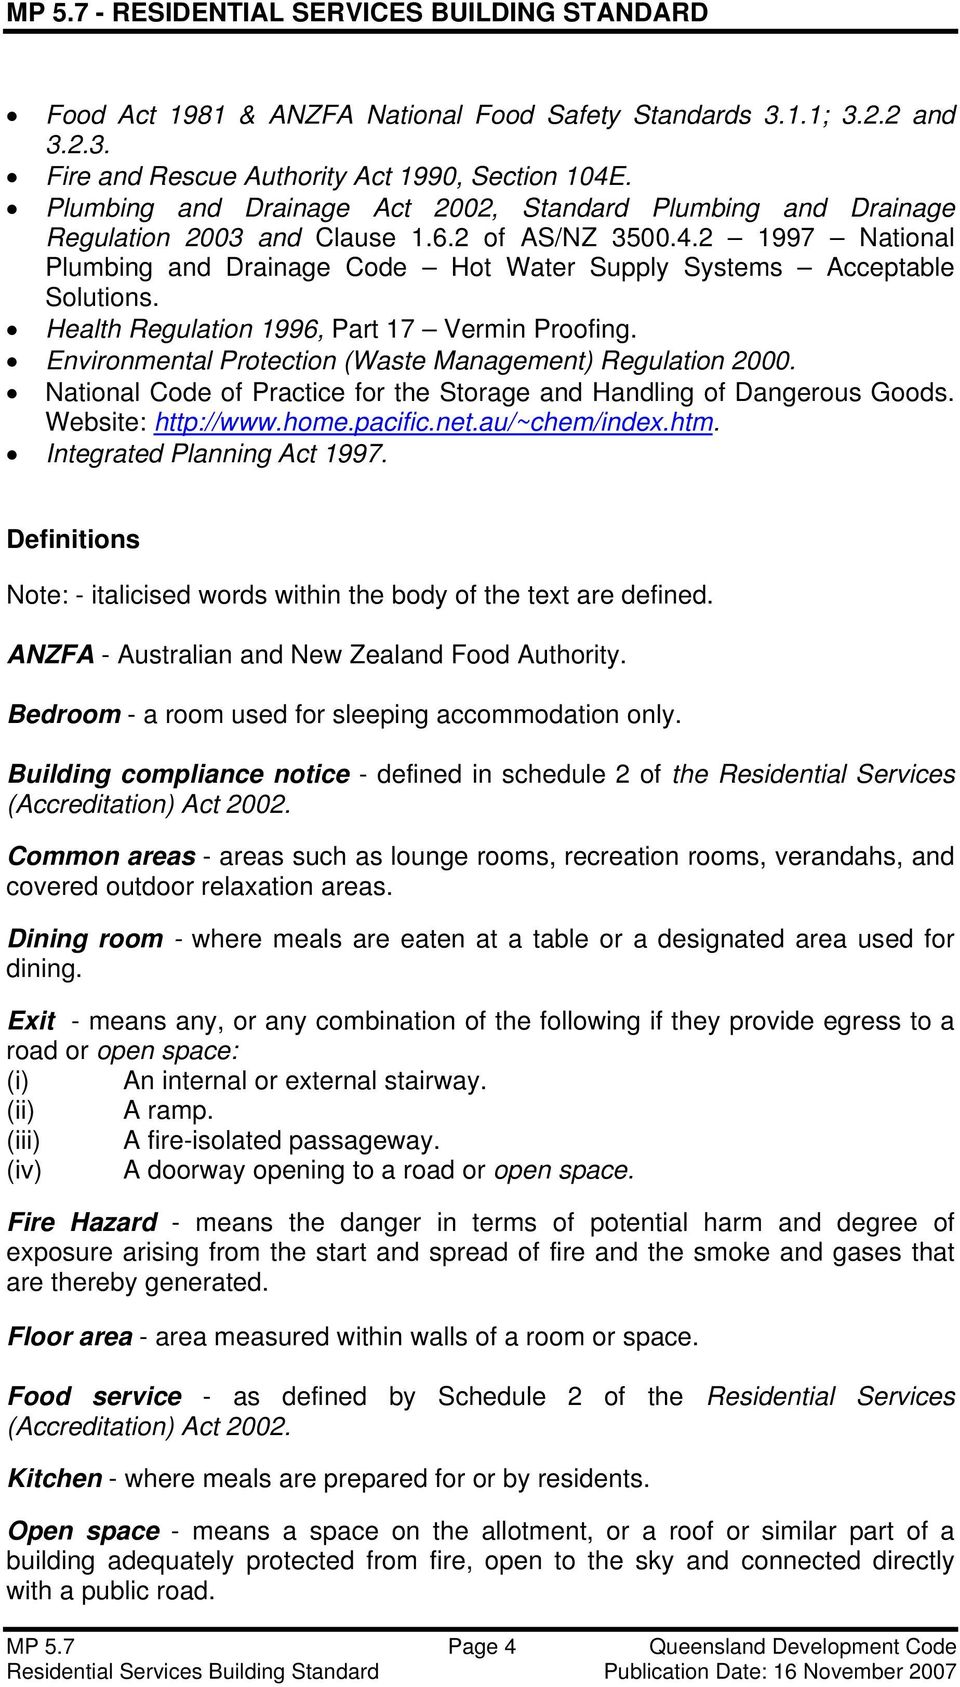 Environmental Protection (Waste Management) Regulation 2000. National Code of Practice for the Storage Hling of Dangerous Goods. Website: http://www.home.pacific.net.au/~chem/index.htm.